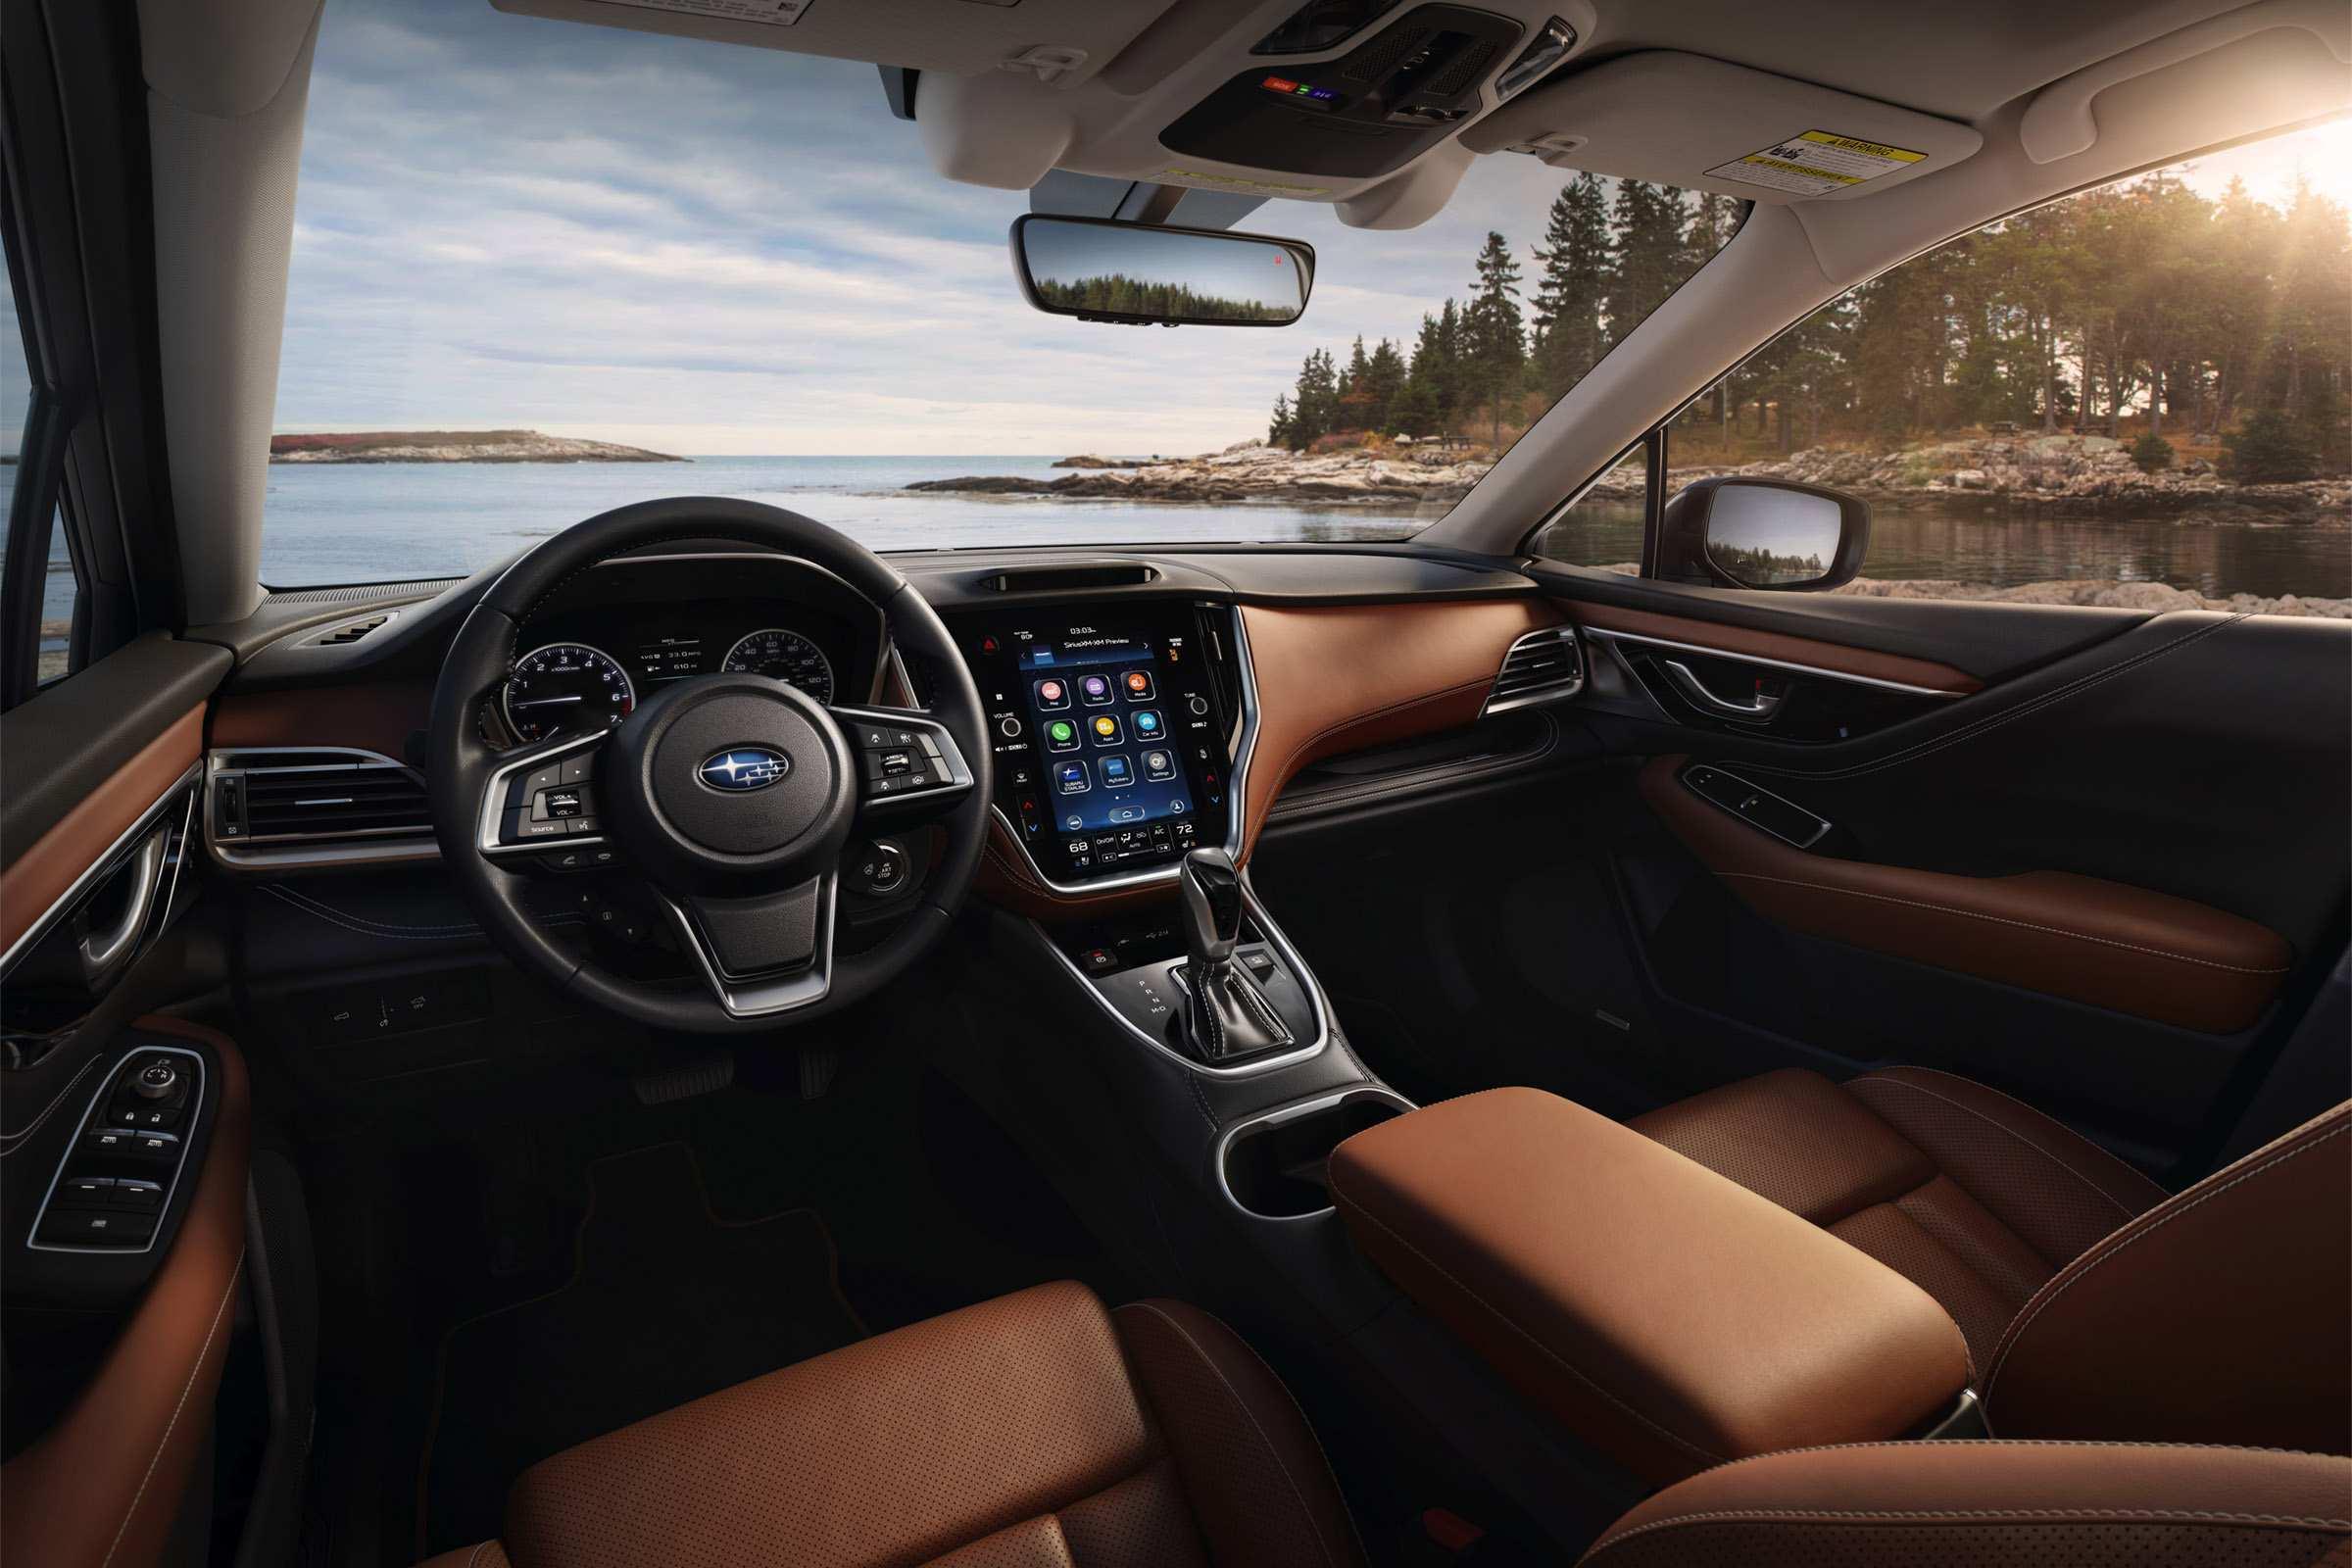 73 Gallery of Subaru Outback New Model 2020 Exterior and Interior by Subaru Outback New Model 2020